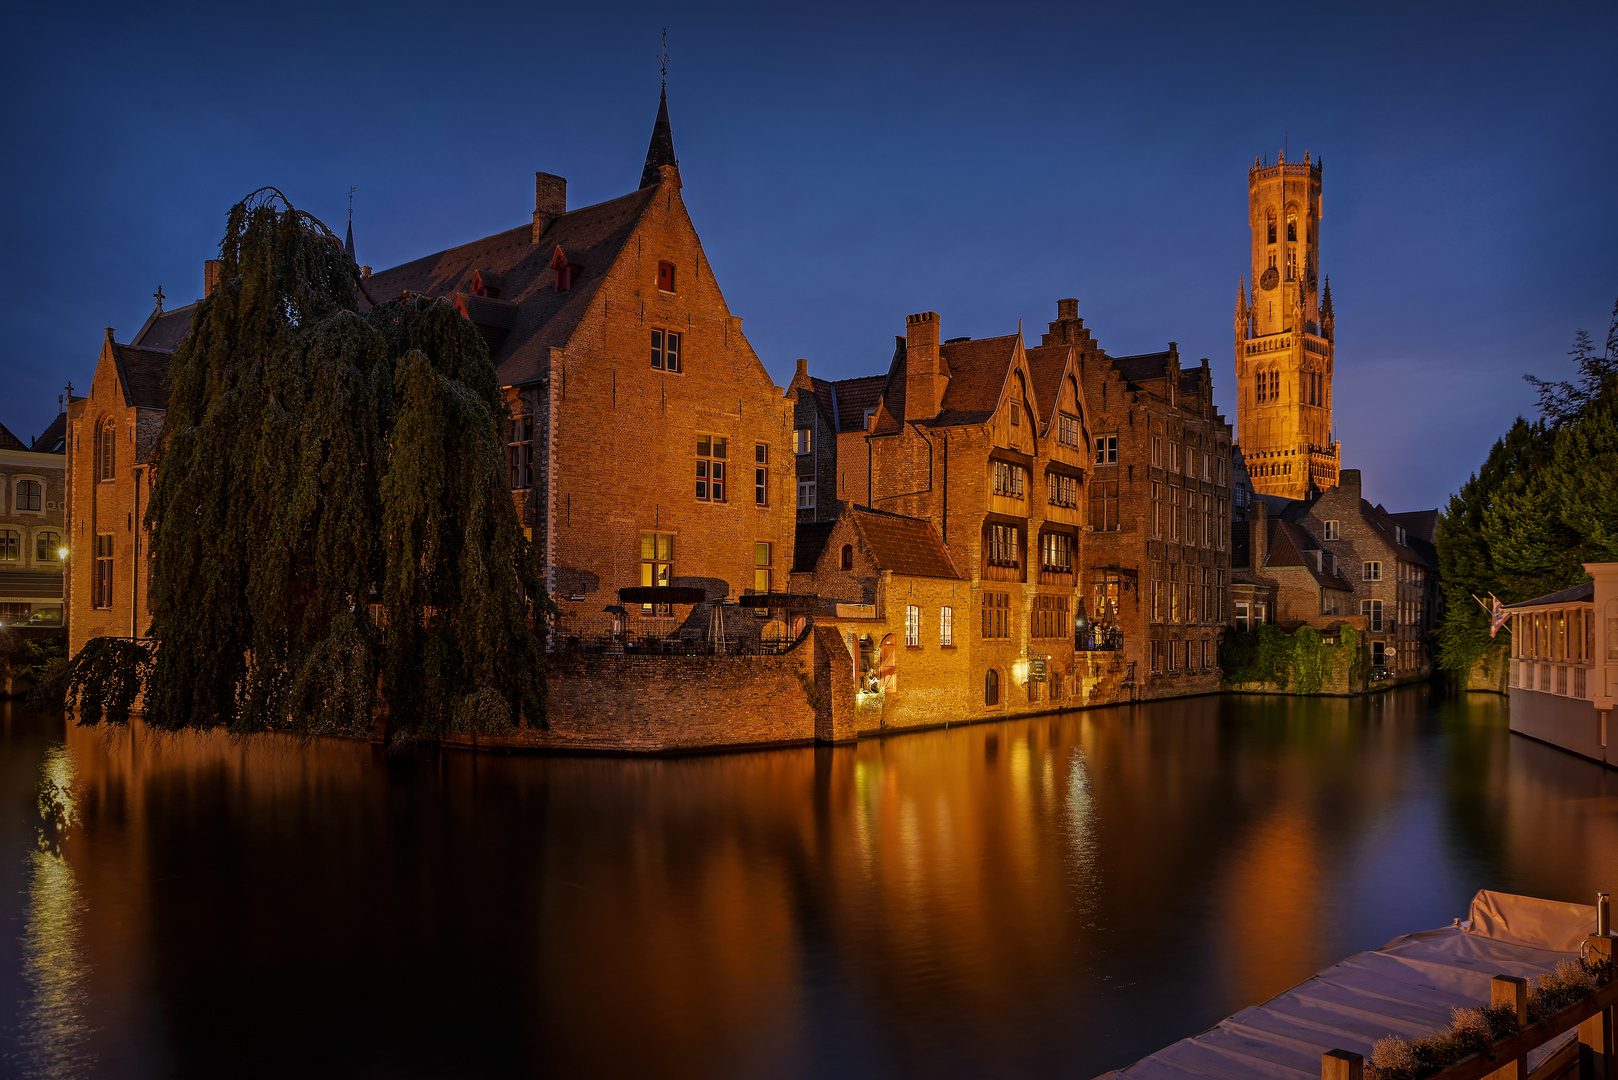 2be in brugge HDR